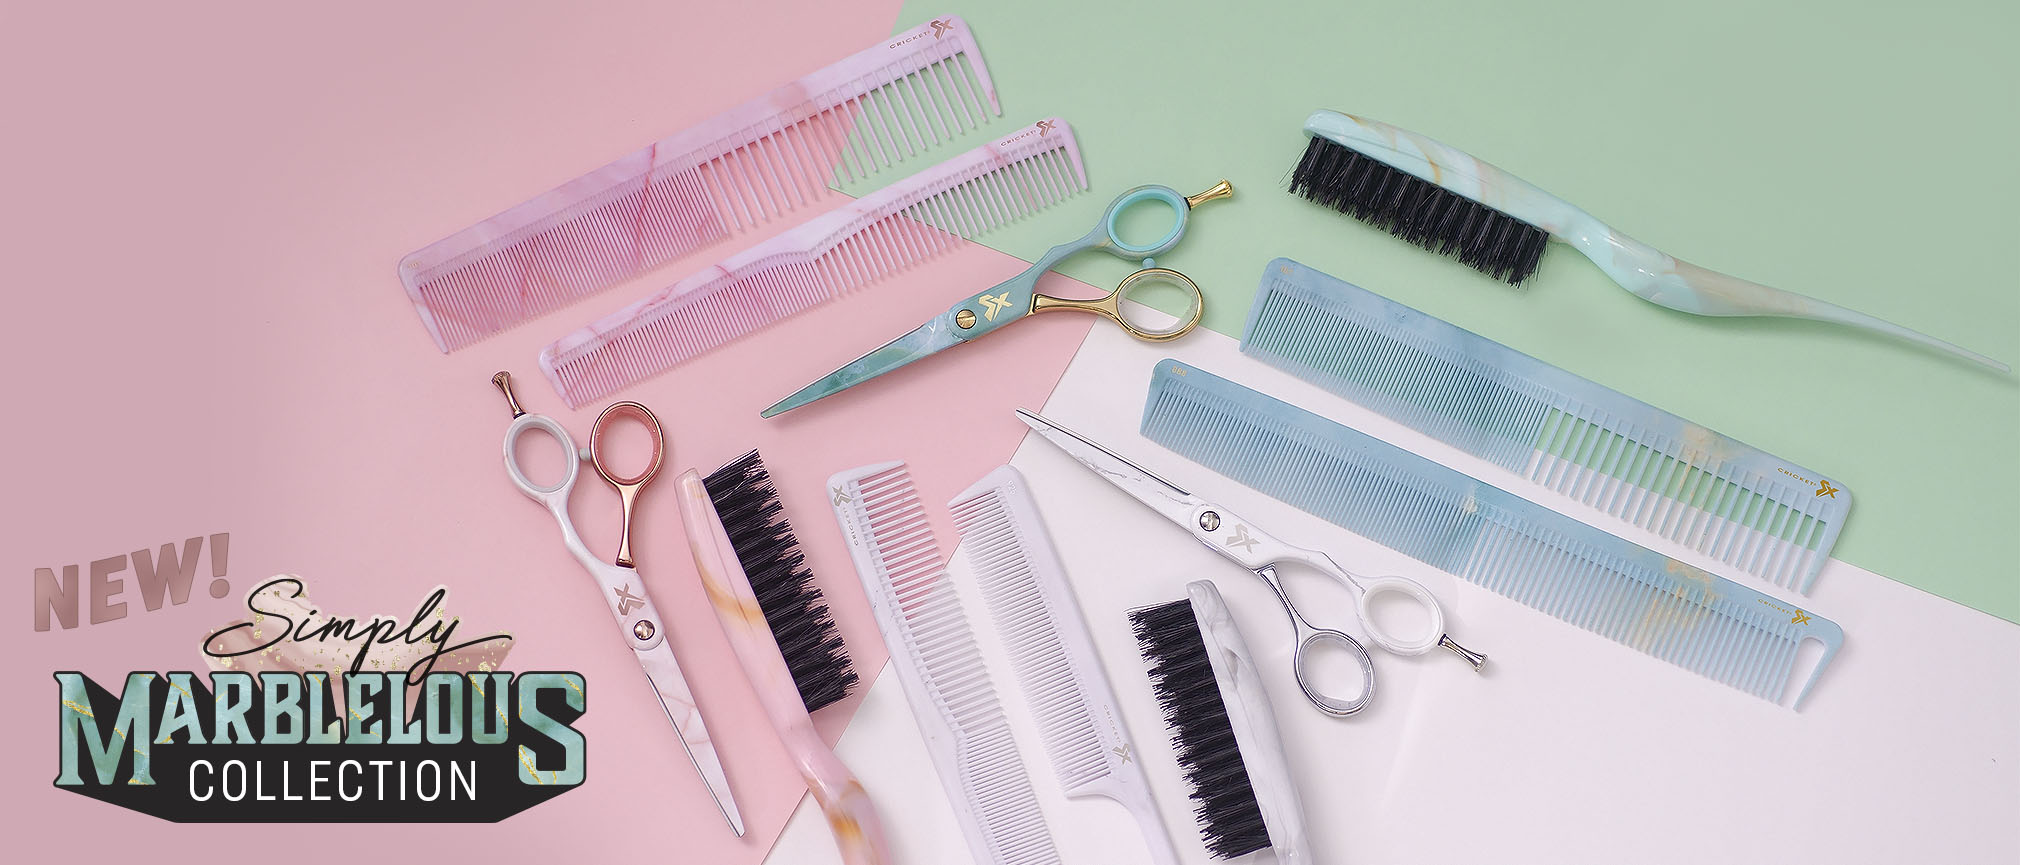 NEW Simply Marblelous Collection of SX shears, SX combs and Amped Up Teasing Brushes